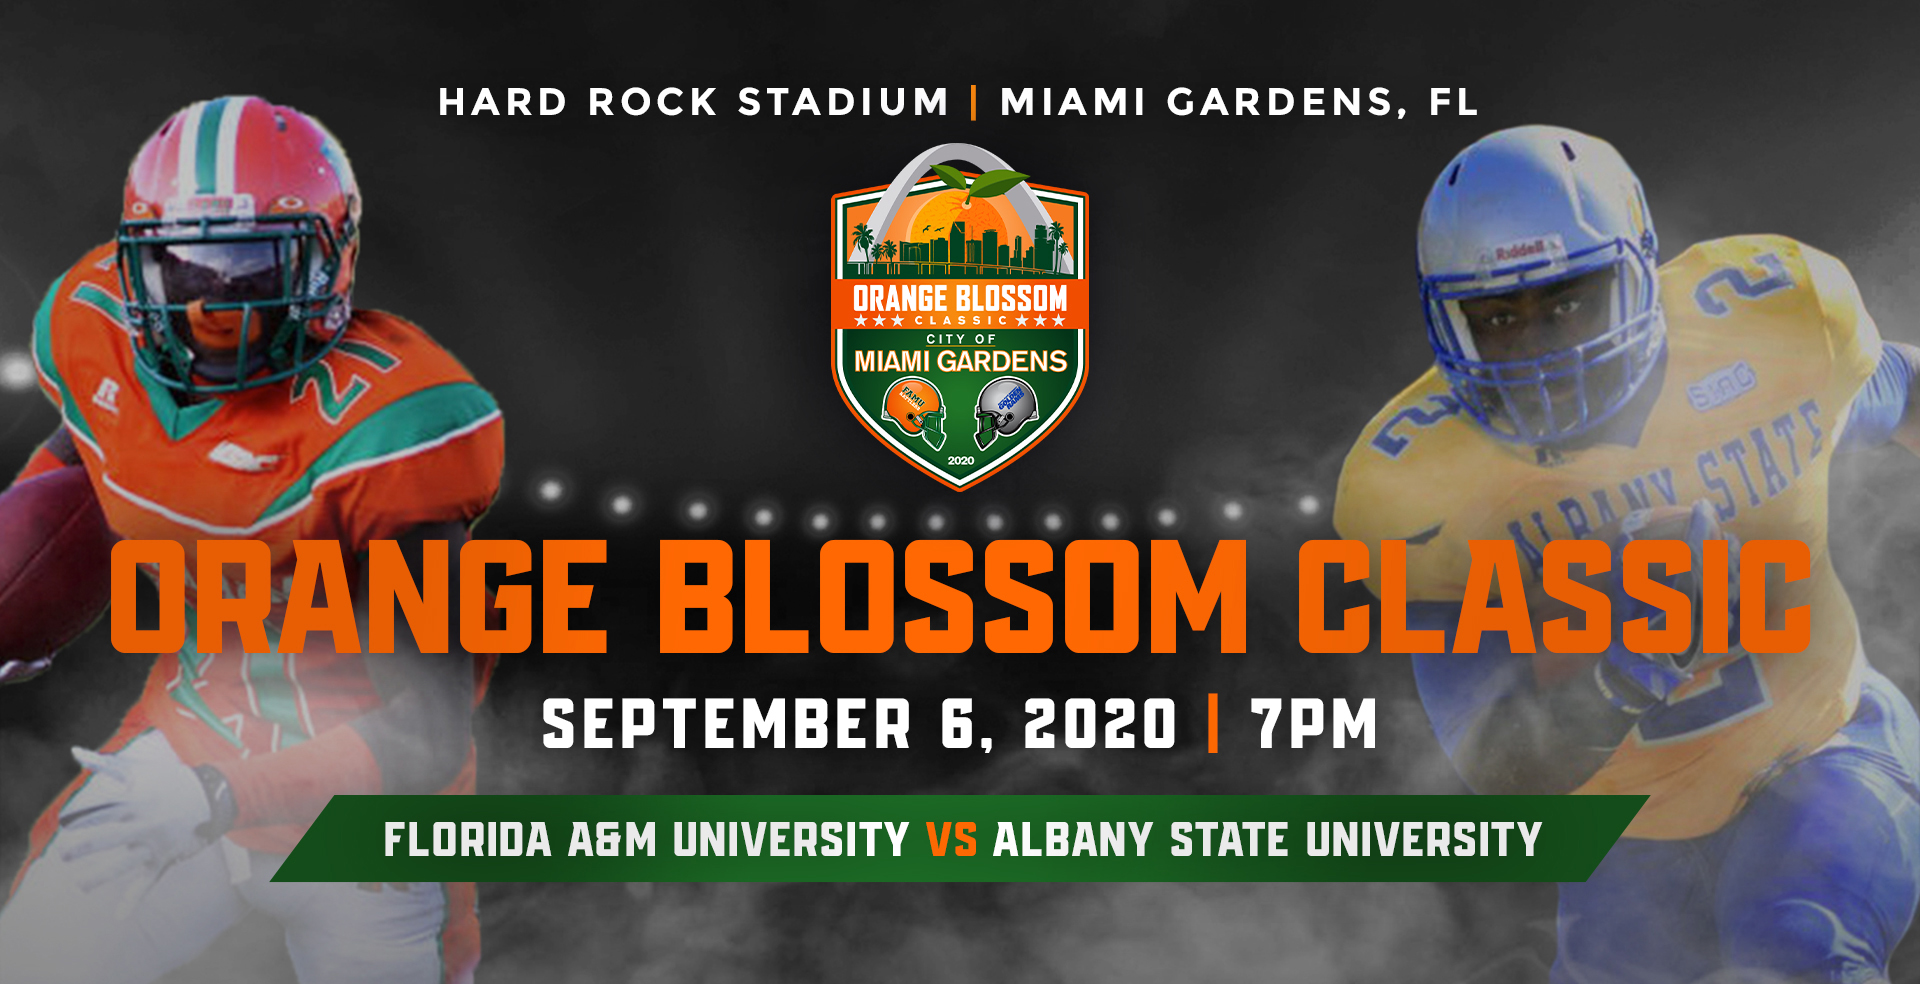 Albany State University Department Of Athletics Release 2020 Orange Blossom Classic Information Albany State University Athletics